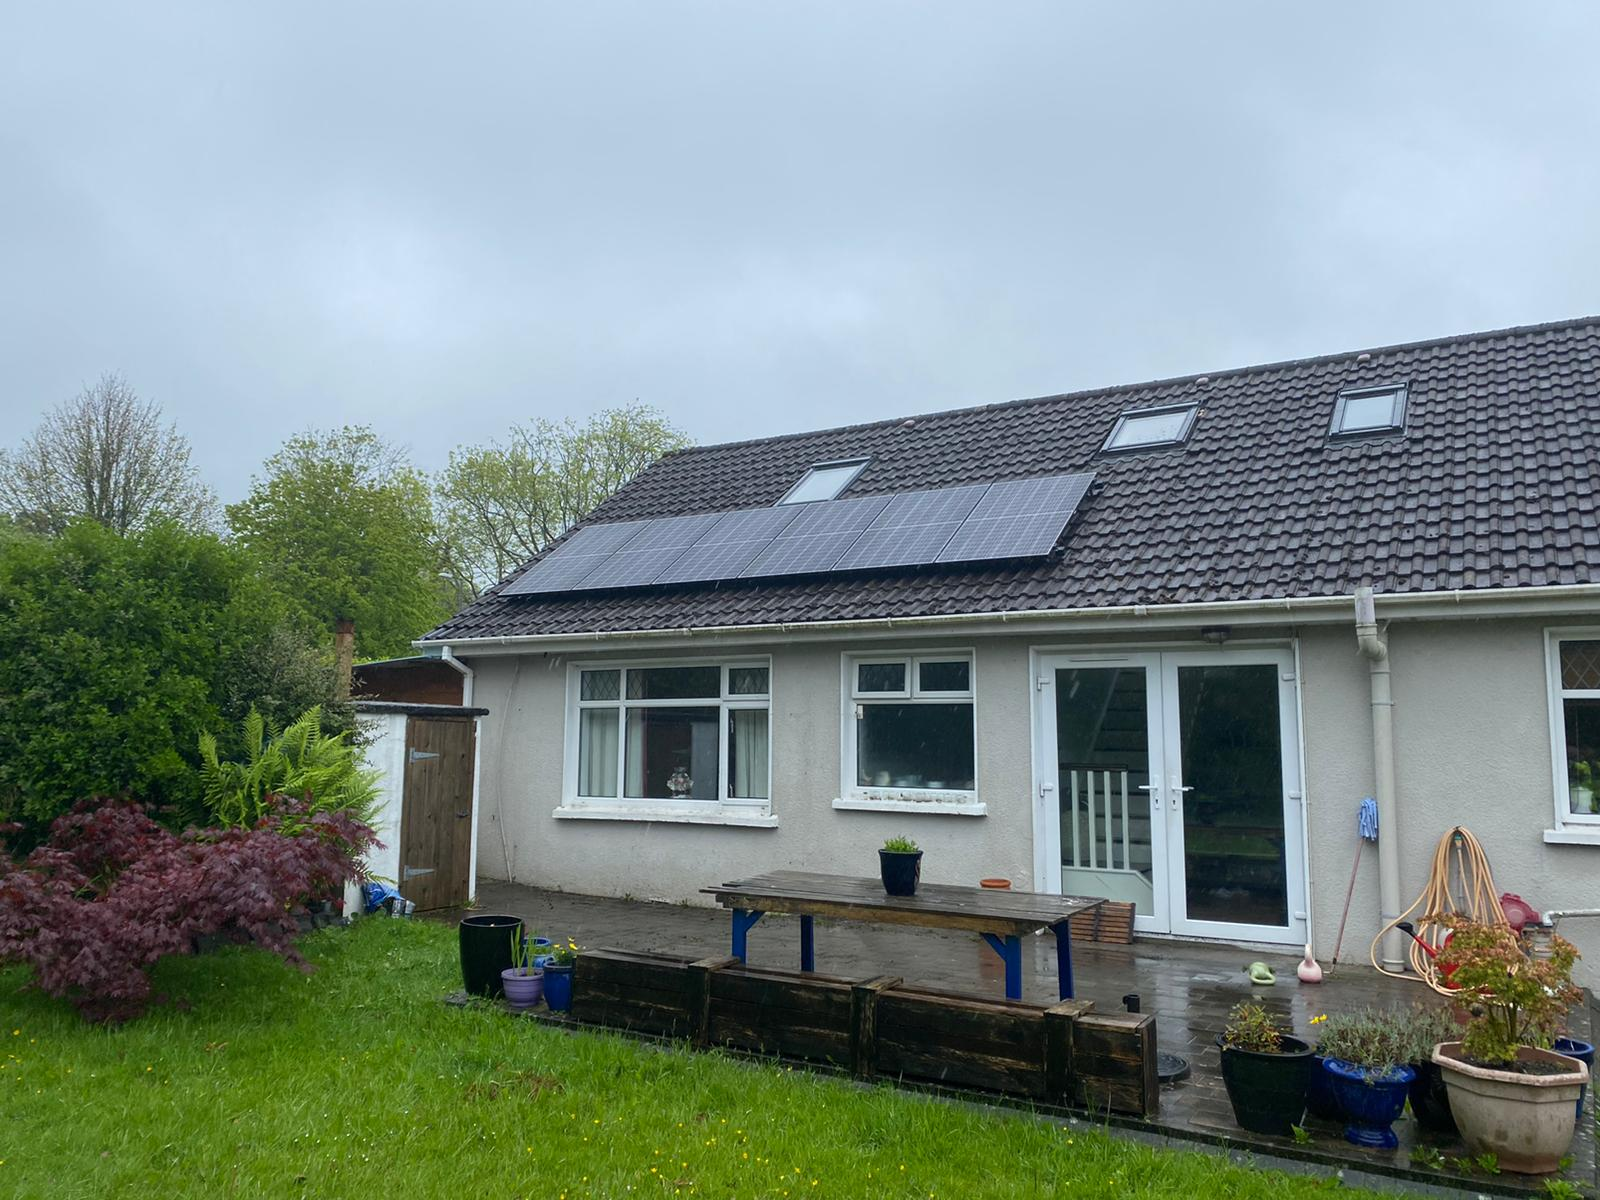 Bungalow with PV solar Panels